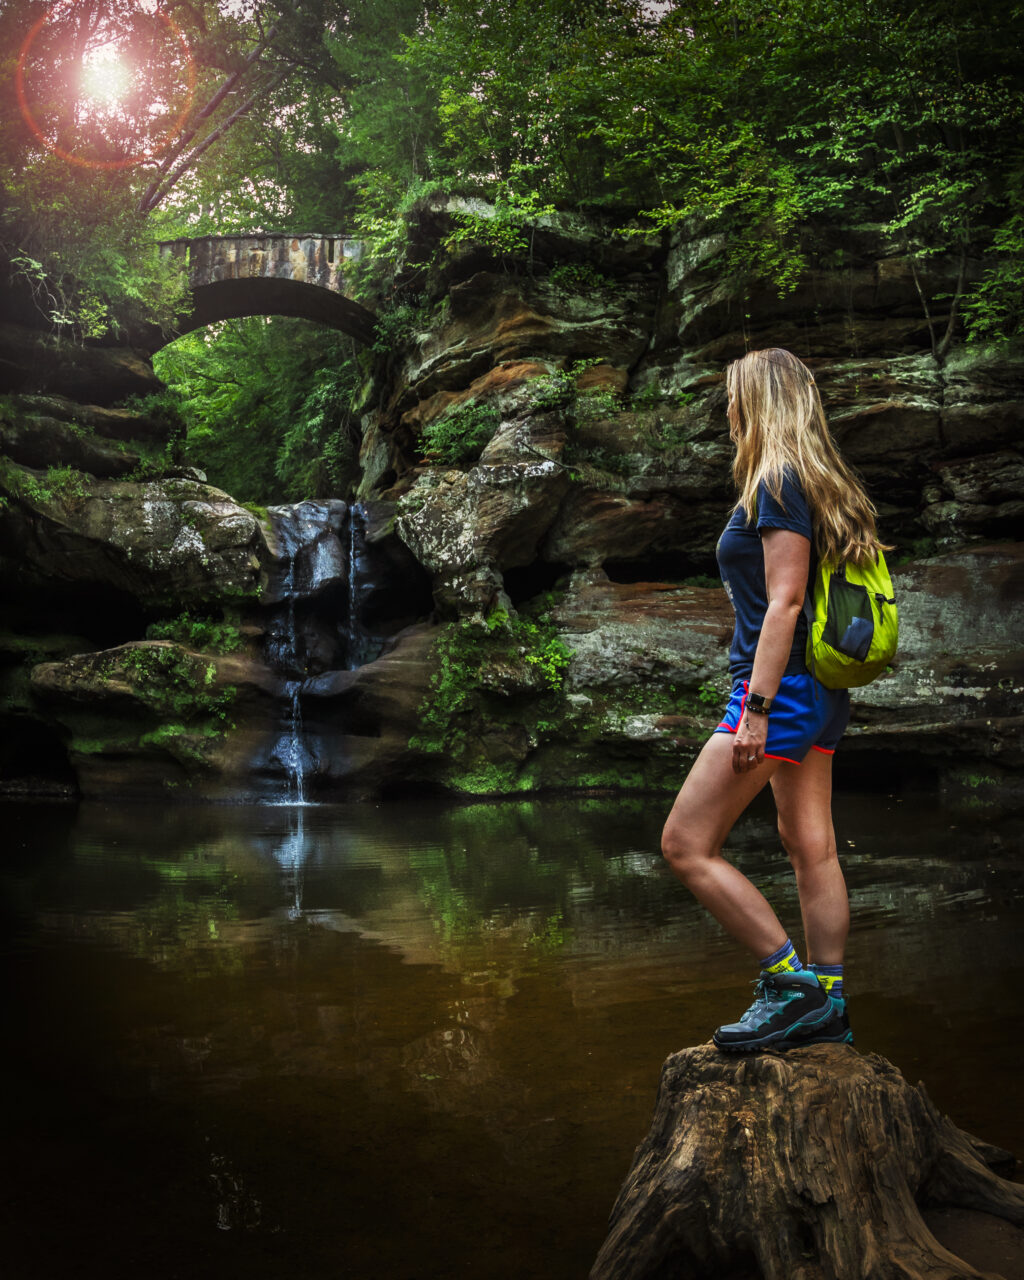 Woman standing on a tree stump with a waterfall in the background in a wooded area.